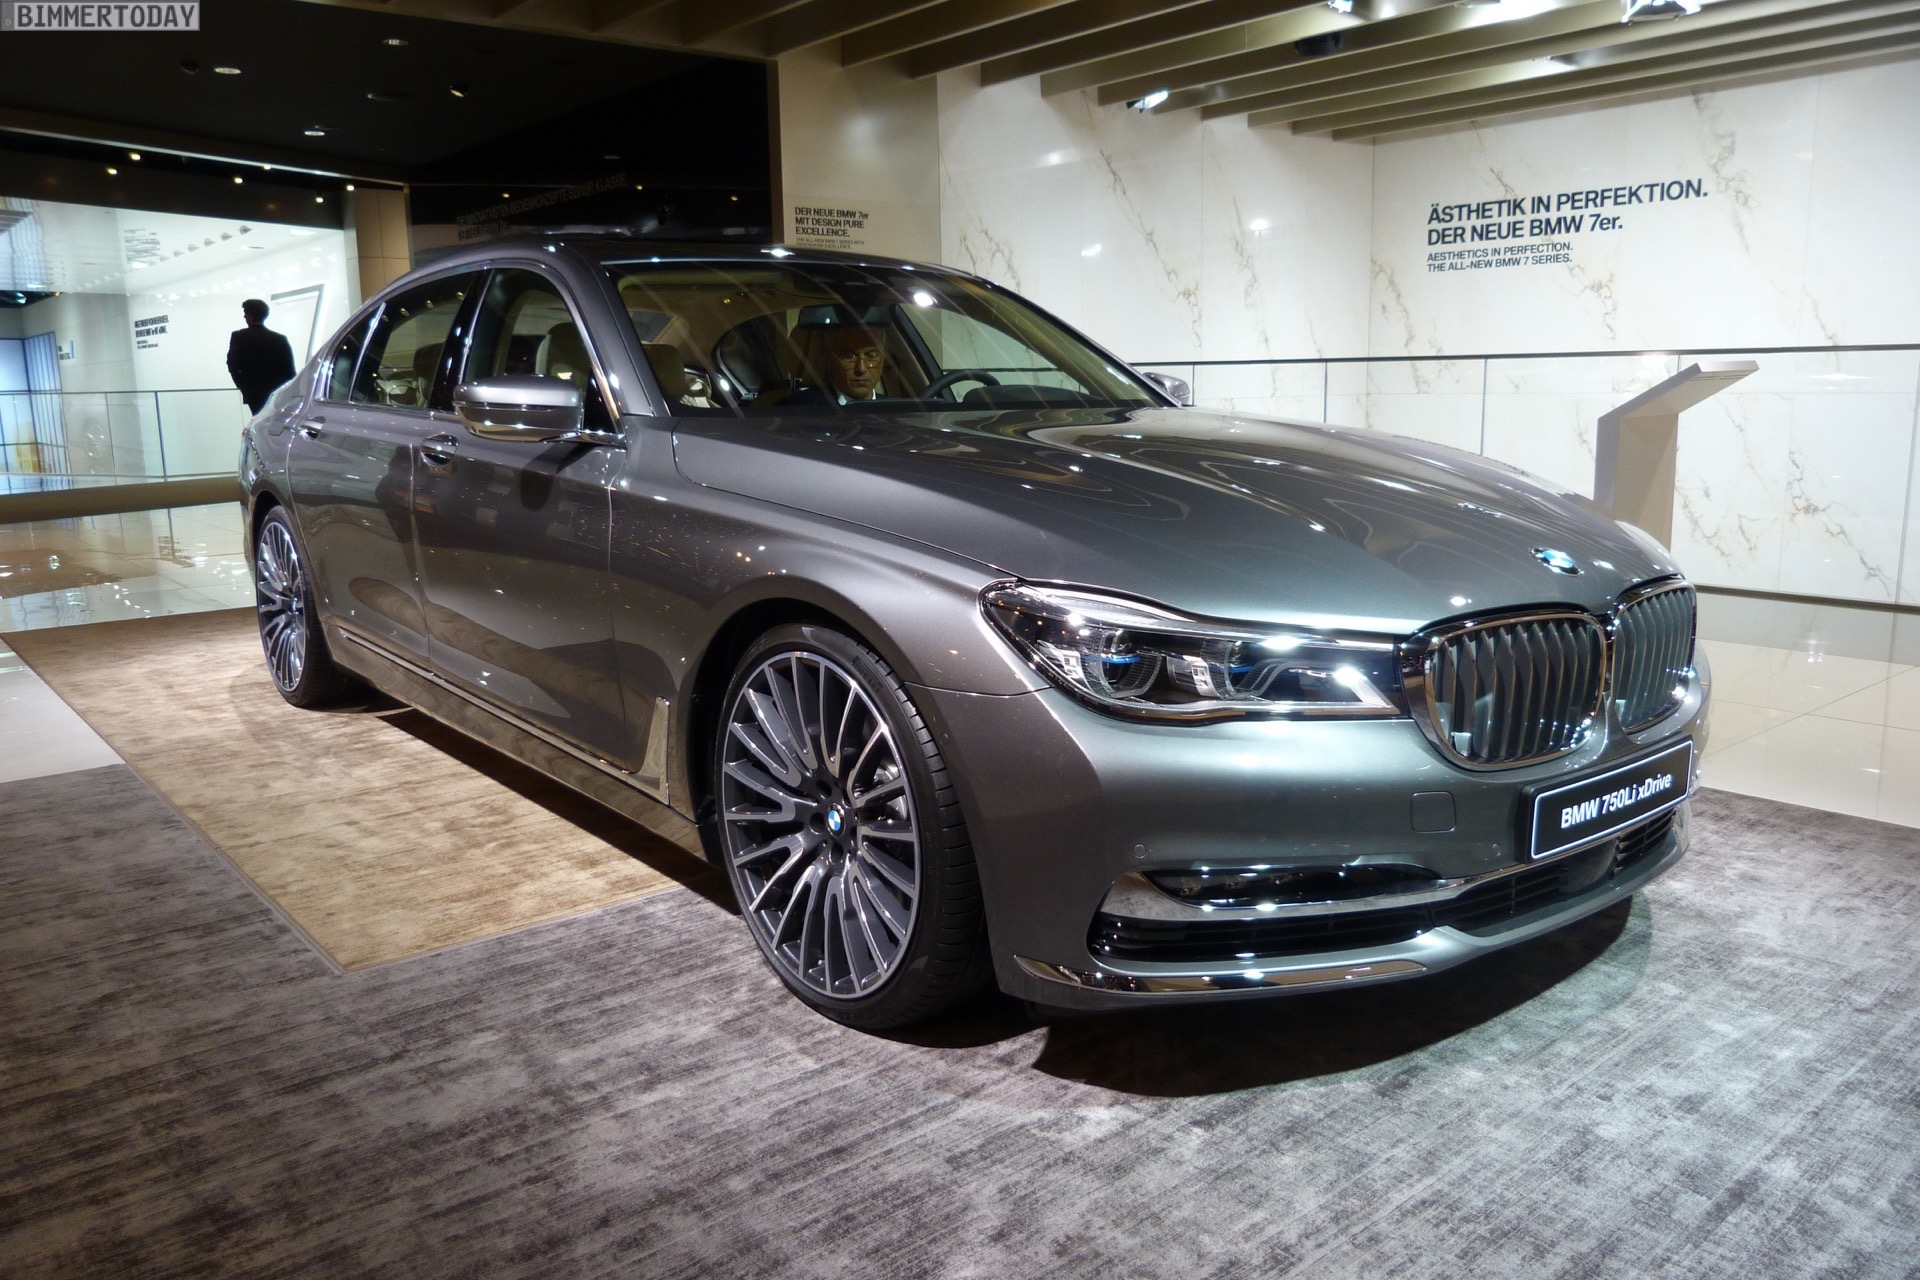 Iaa 2015 Bmw 7er Design Pure Excellence Mit Vollem G12 Luxus